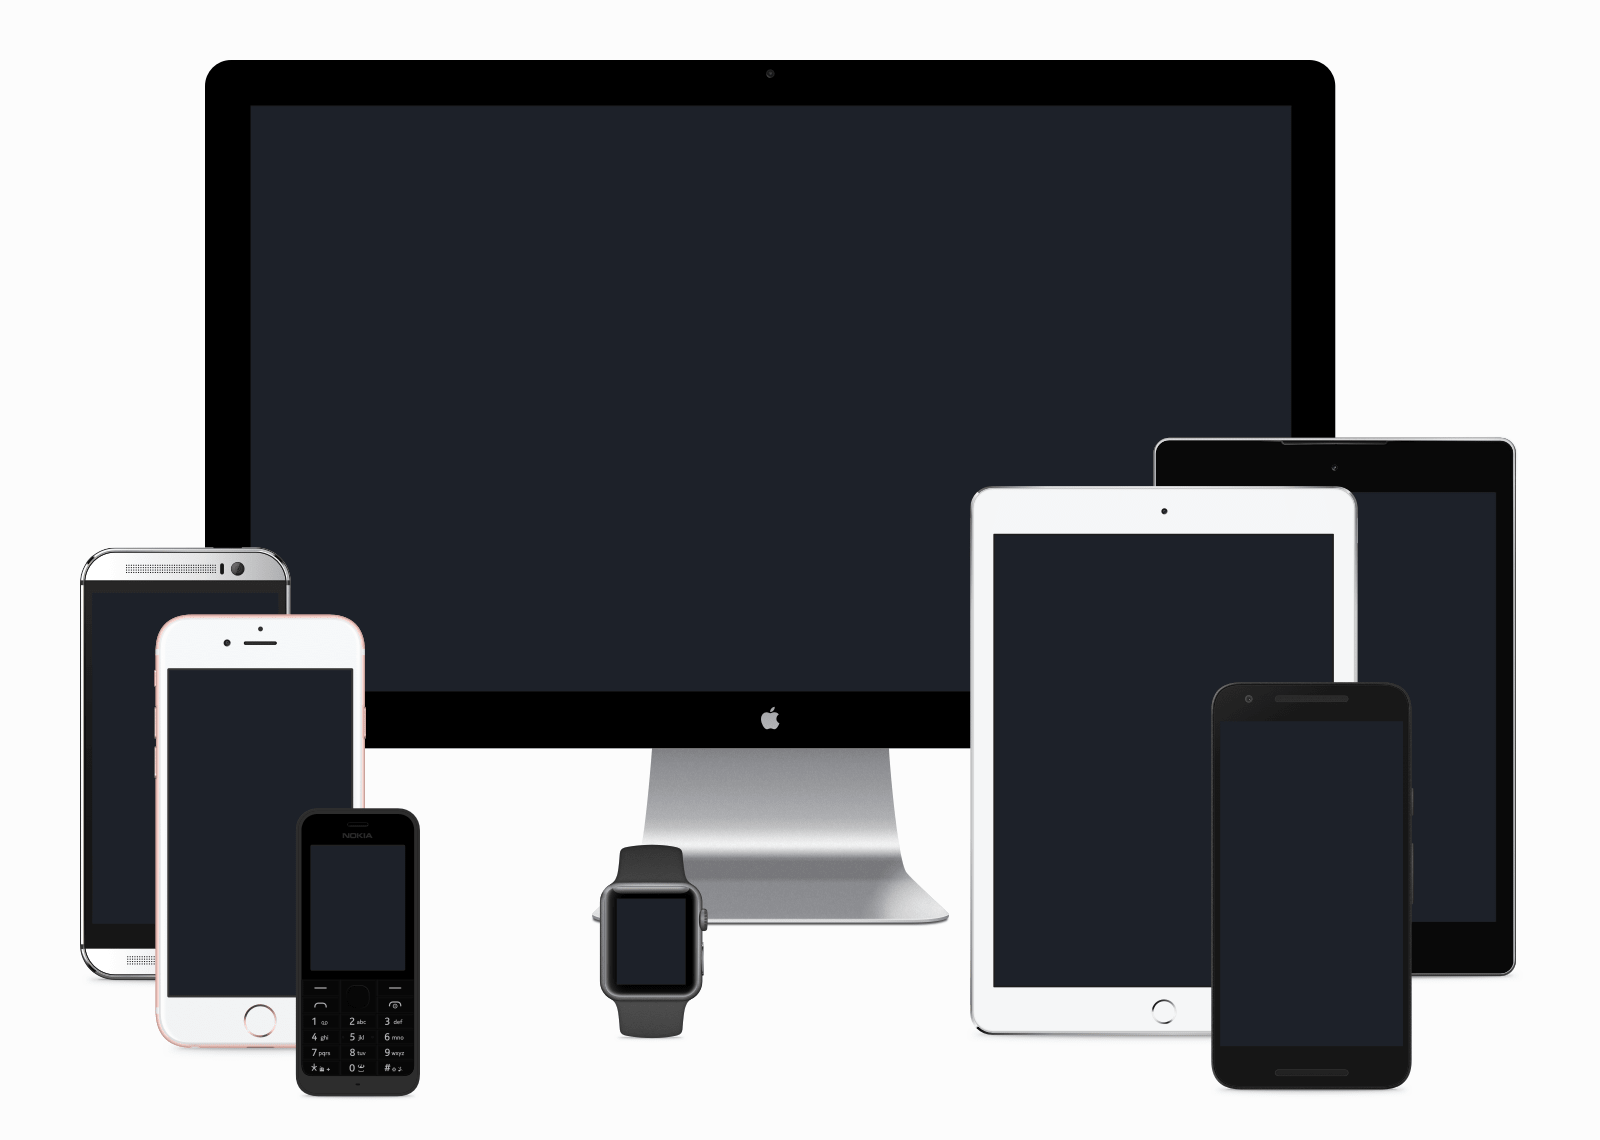 devices_header